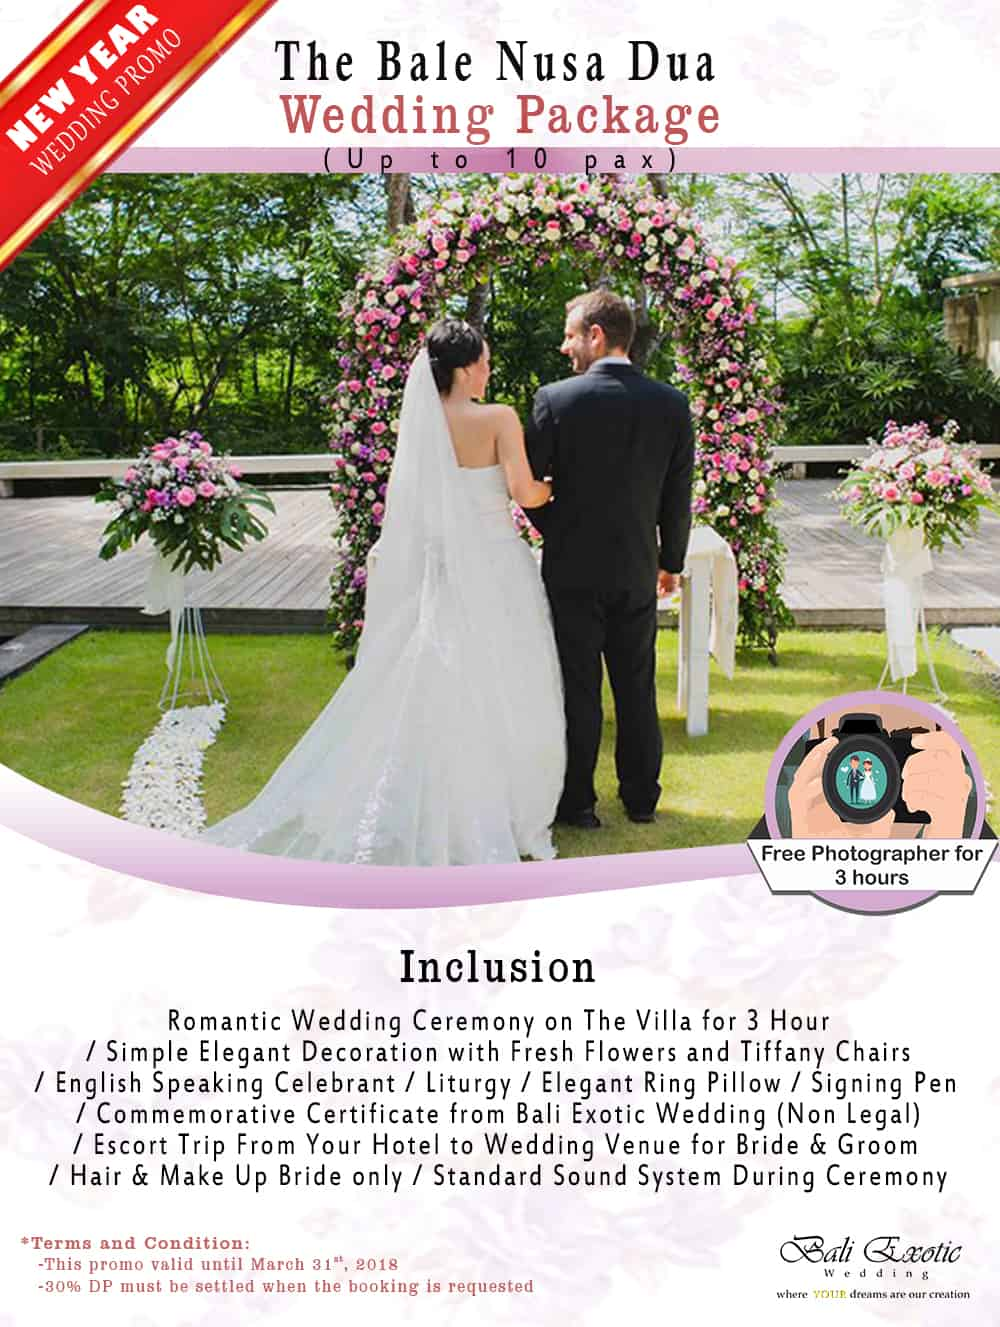 The Bale Nusa Dua Wedding Package